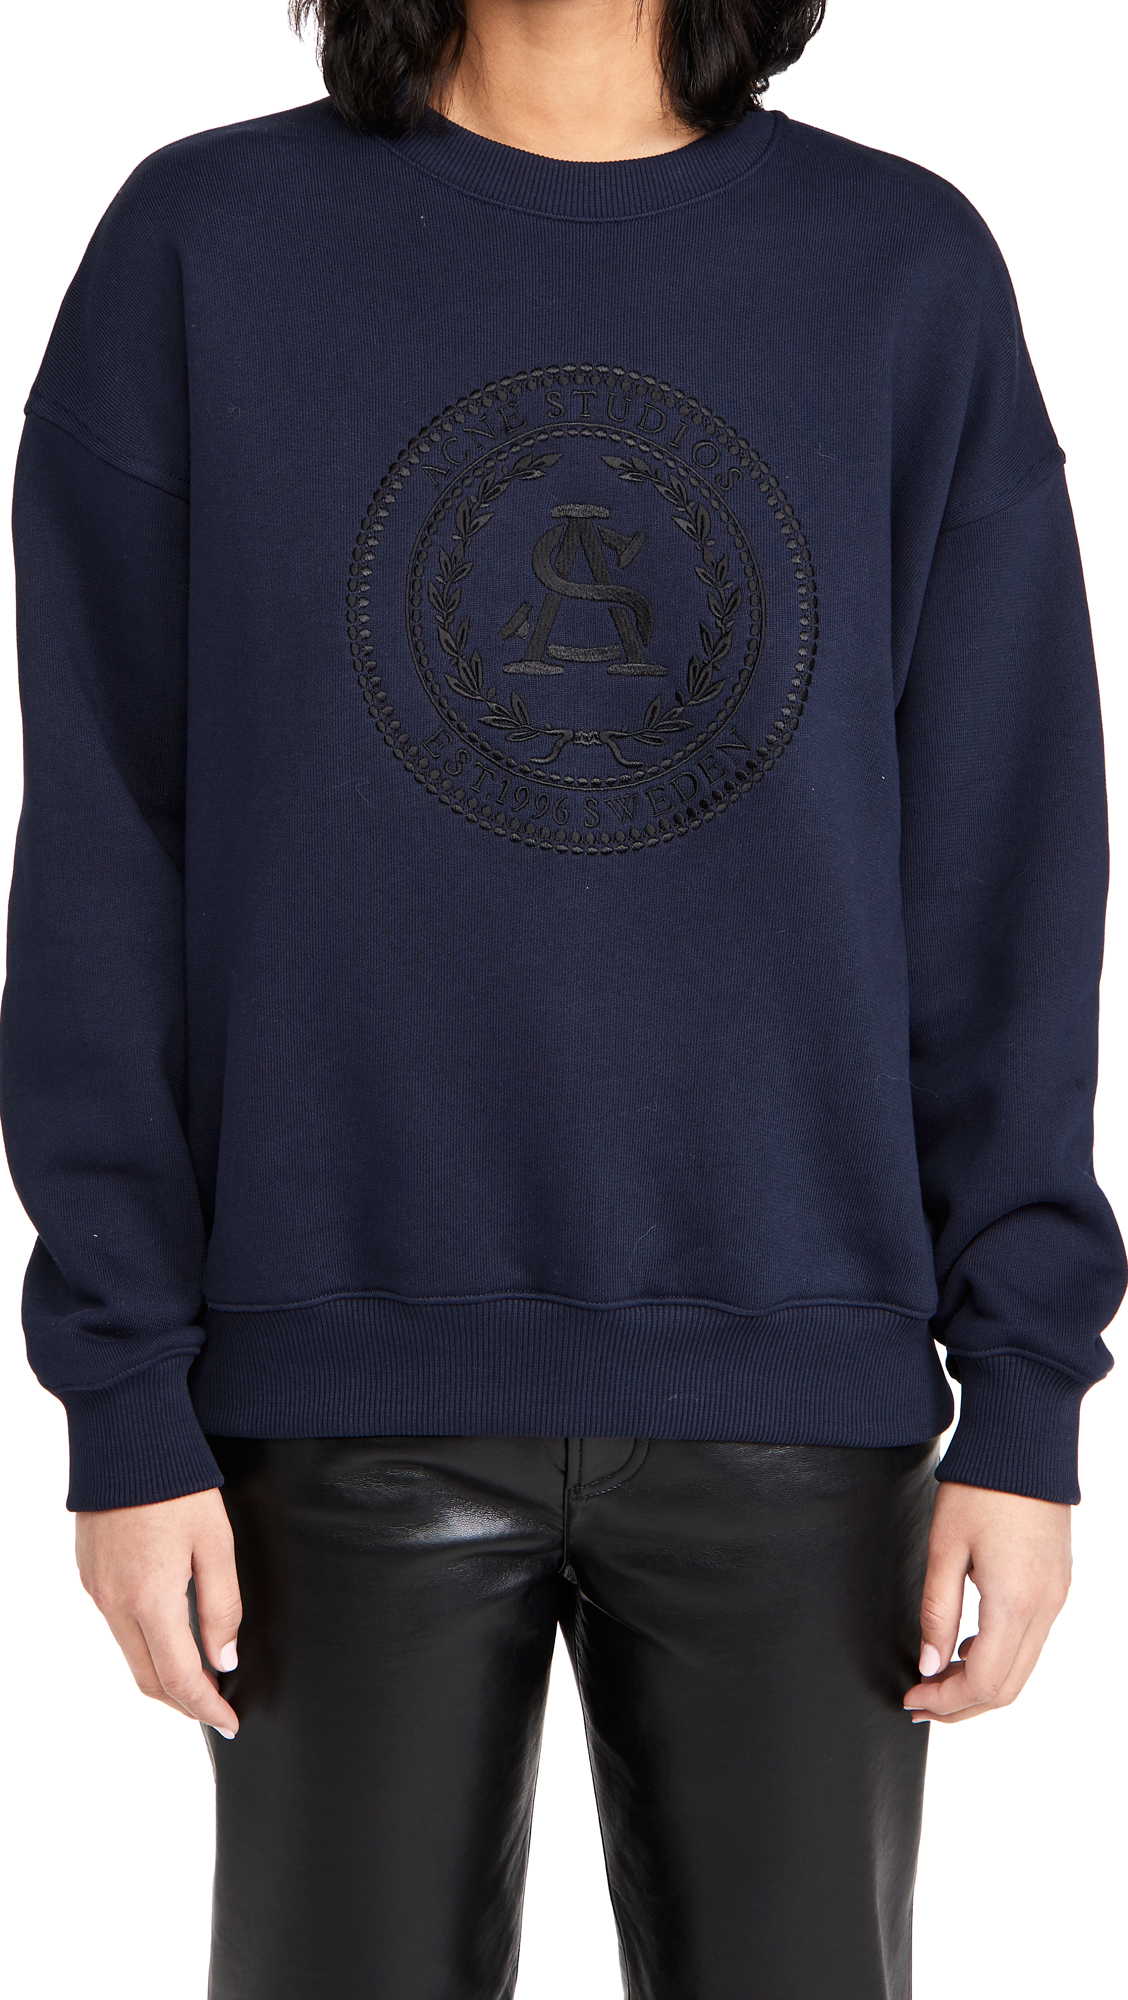 Acne Studios Relaxed Sweatshirt